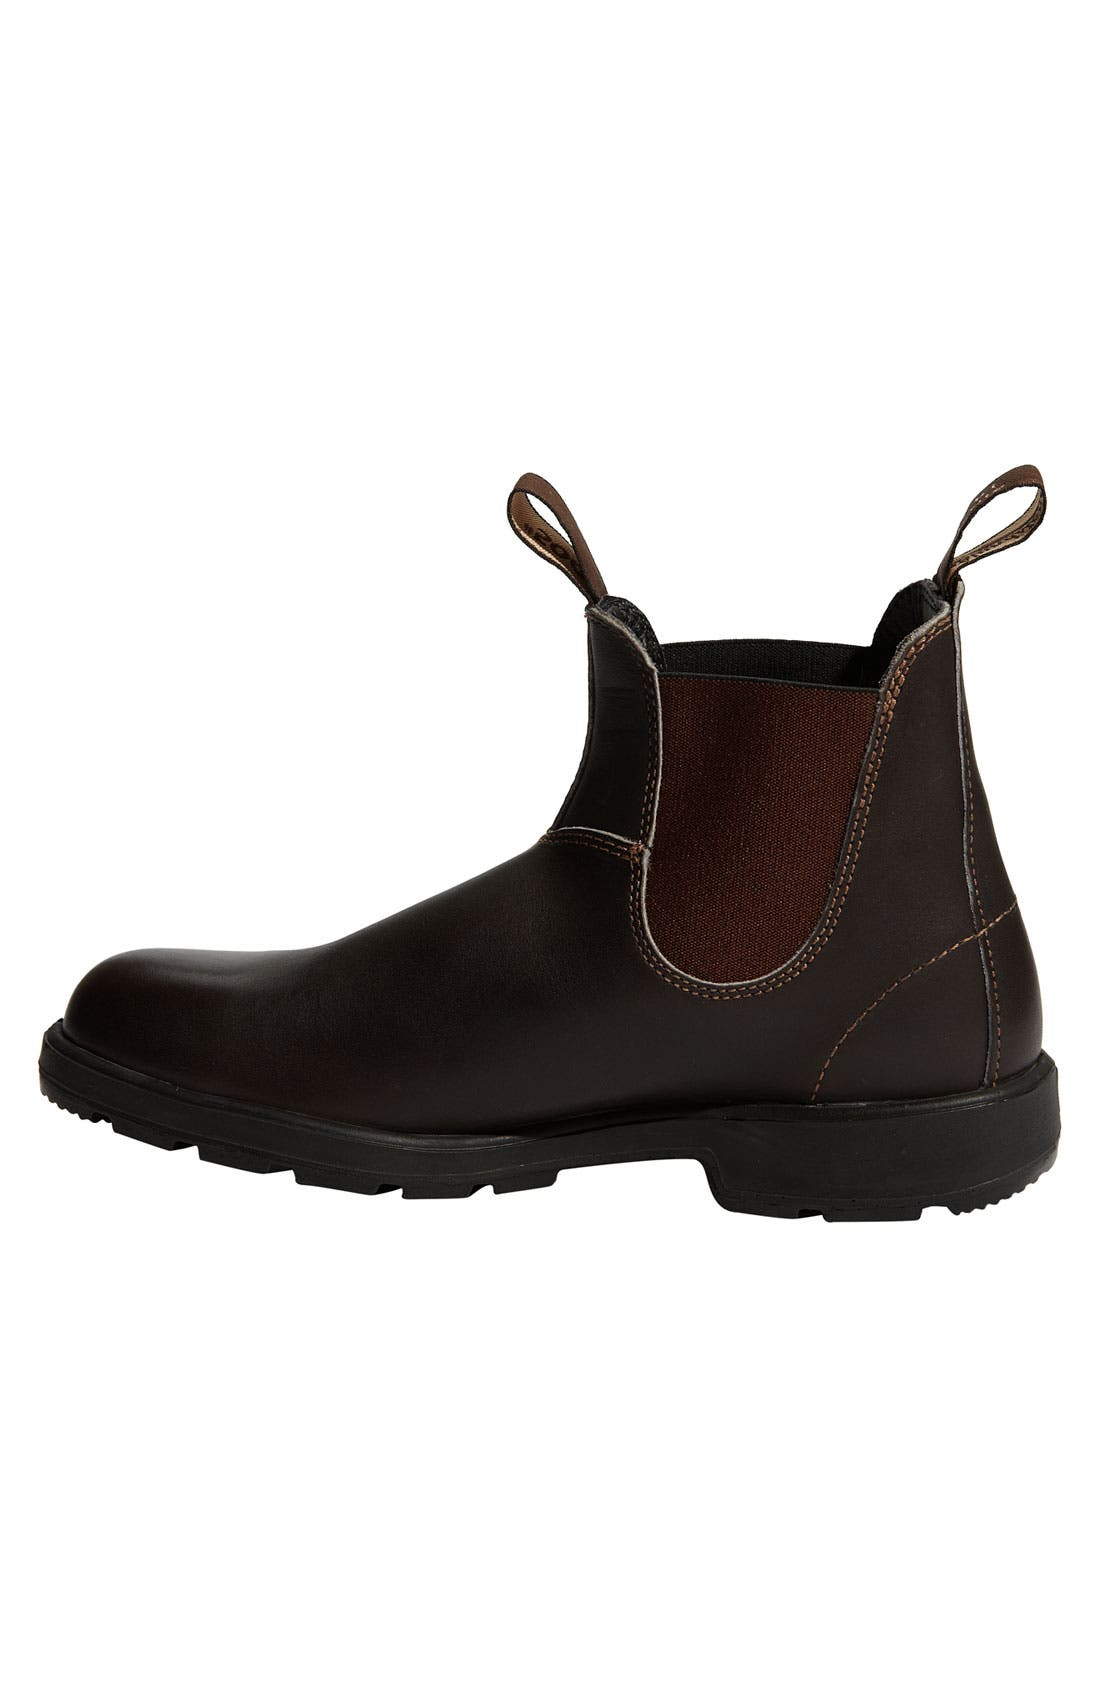 Footwear Classic Boot,                             Alternate thumbnail 2, color,                             STOUT BROWN